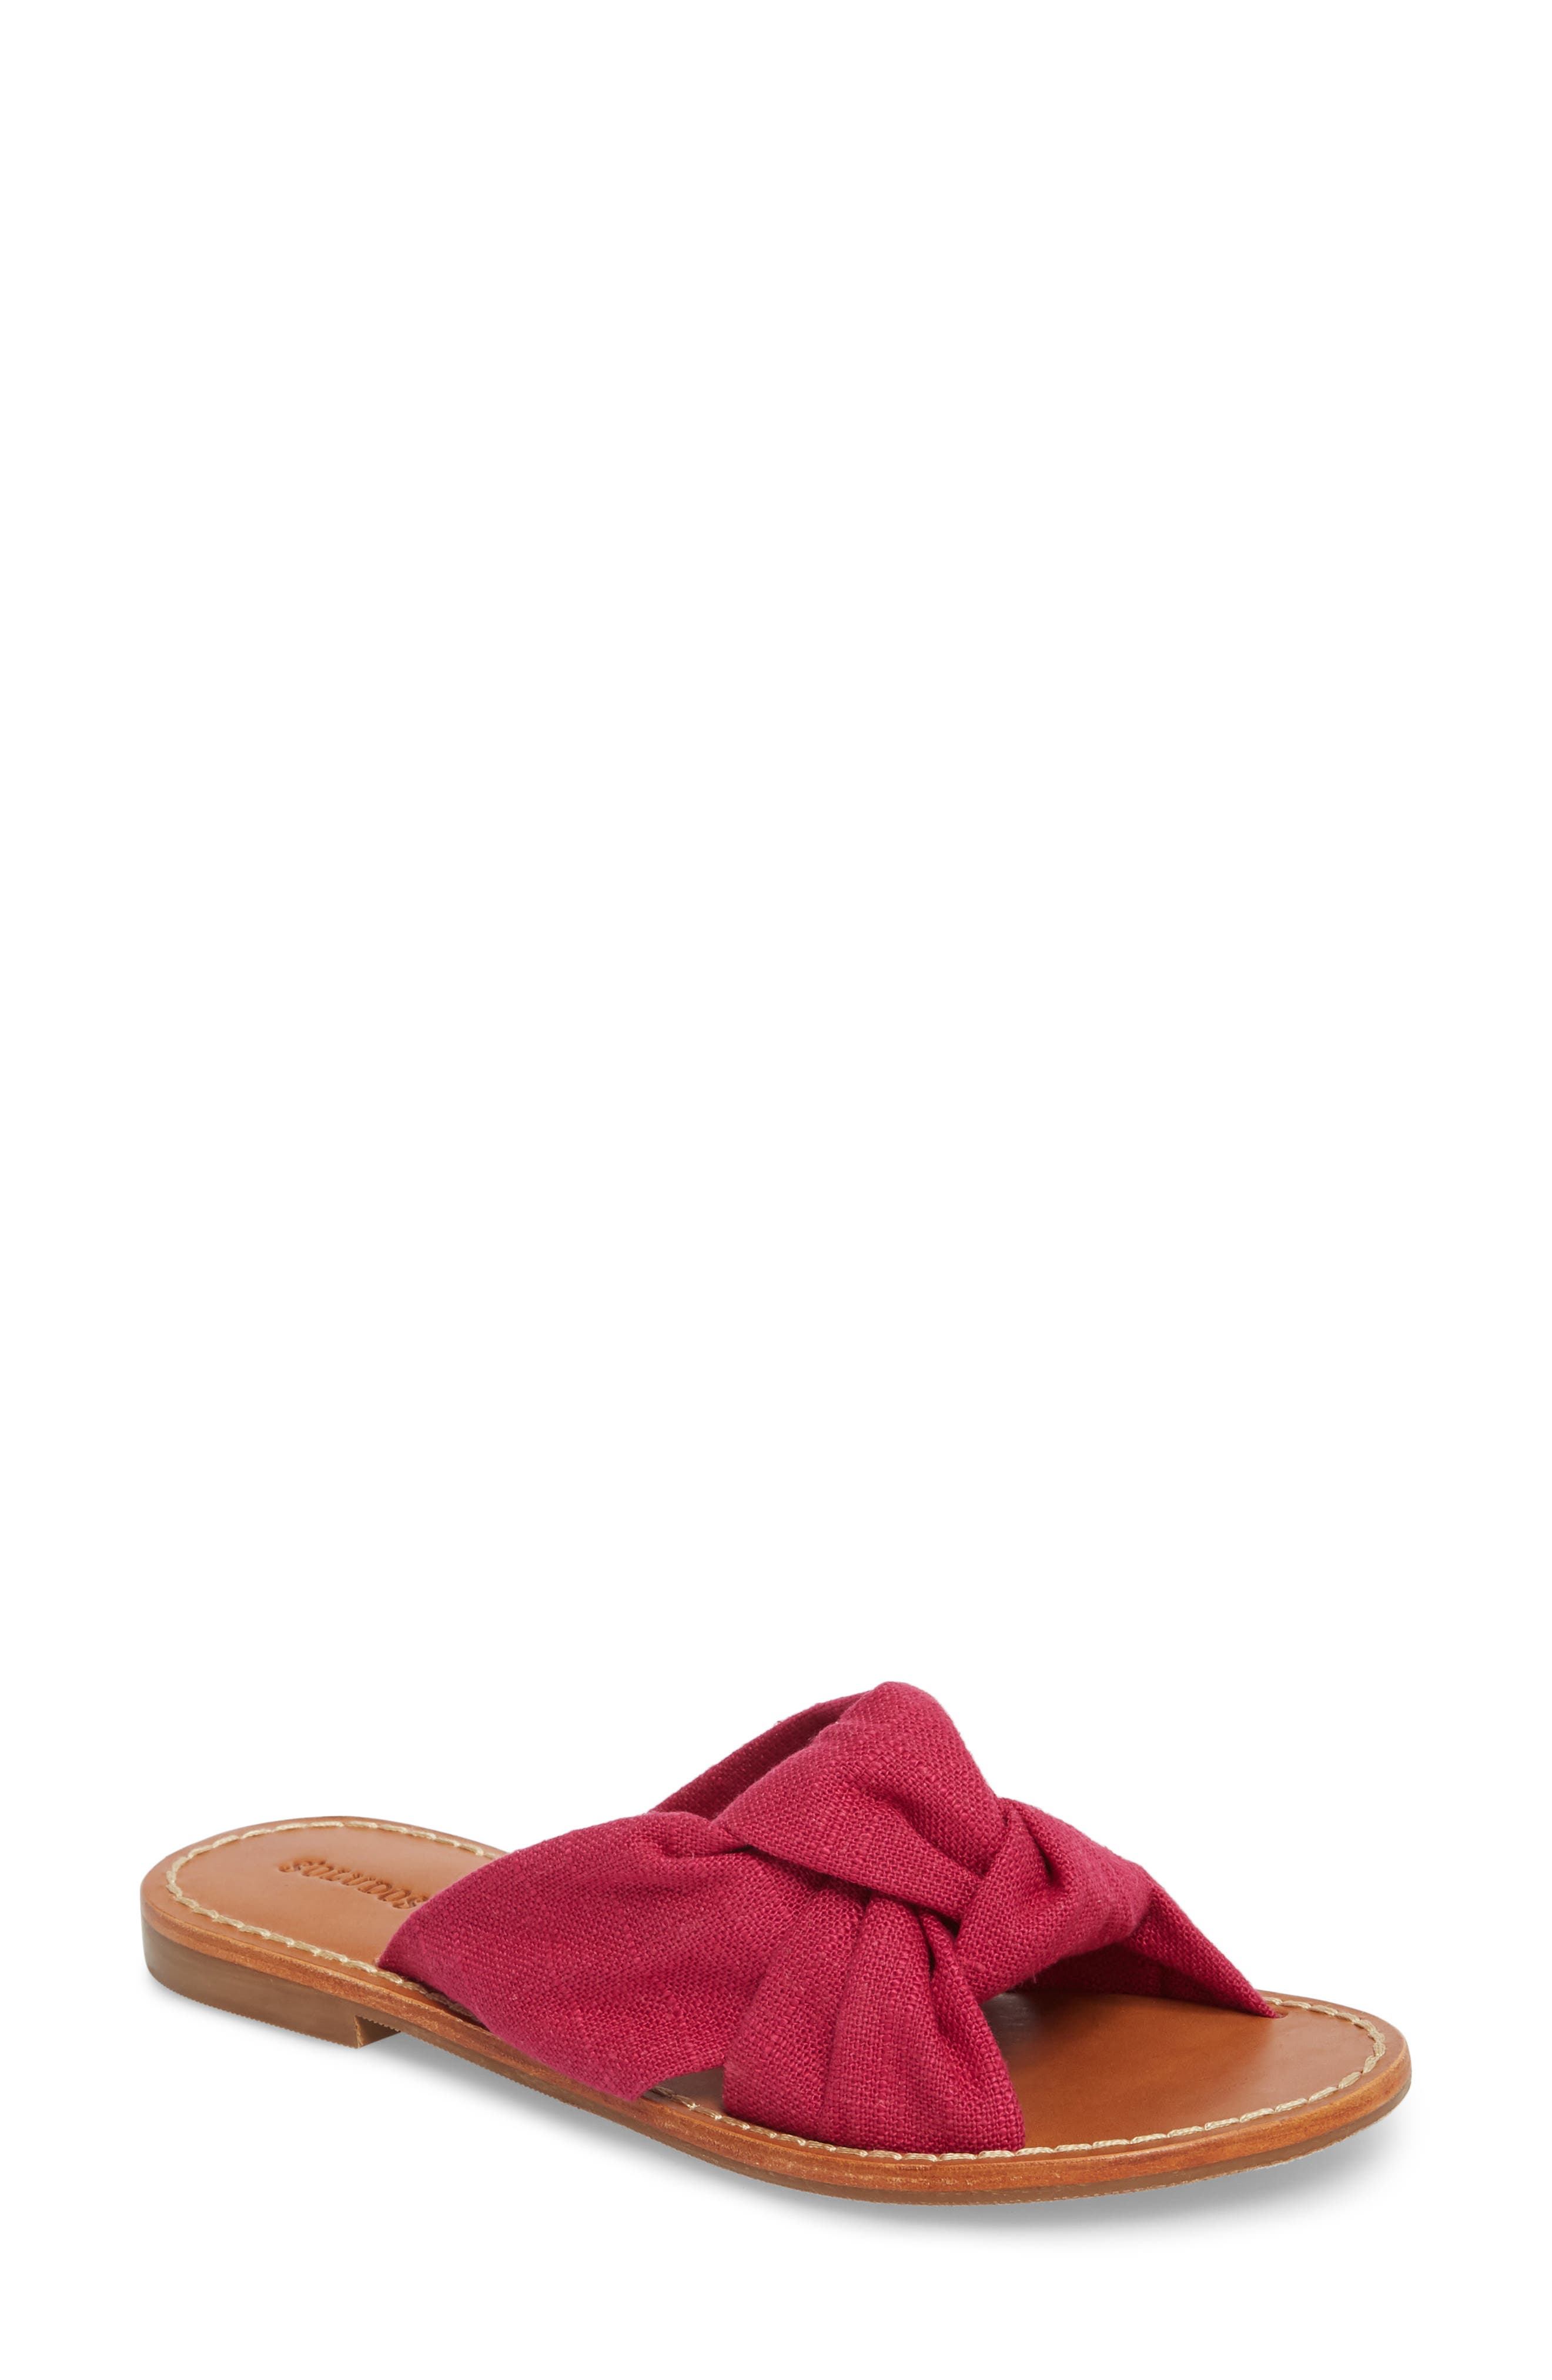 Knotted Slide Sandal,                             Main thumbnail 1, color,